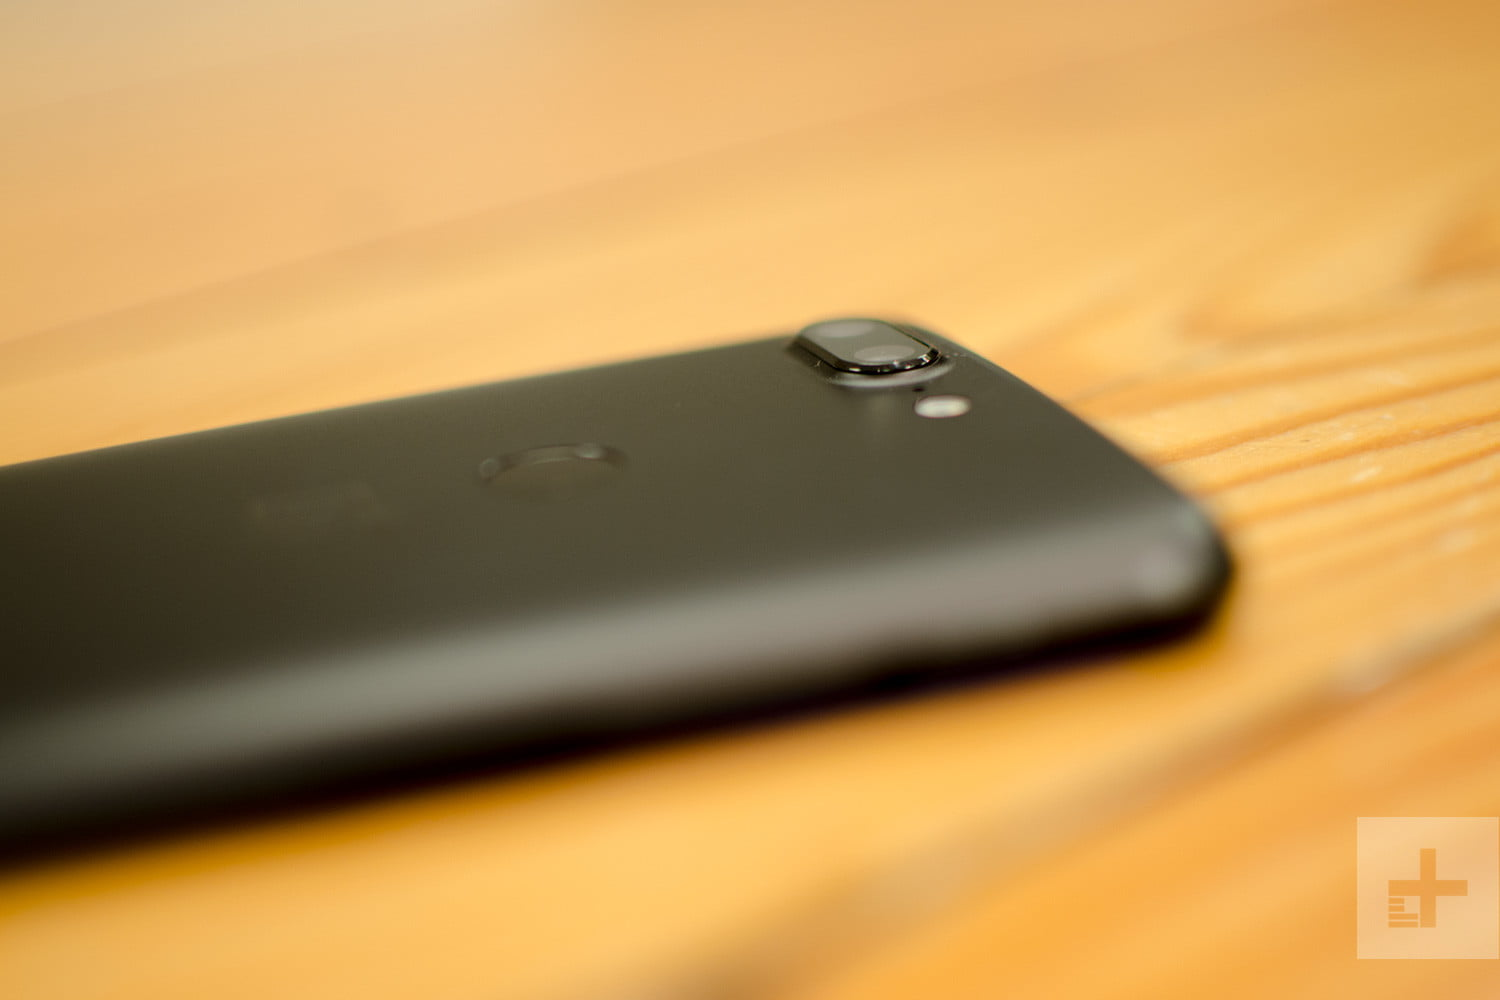 The 10 Best OnePlus 5T Cases | Digital Trends